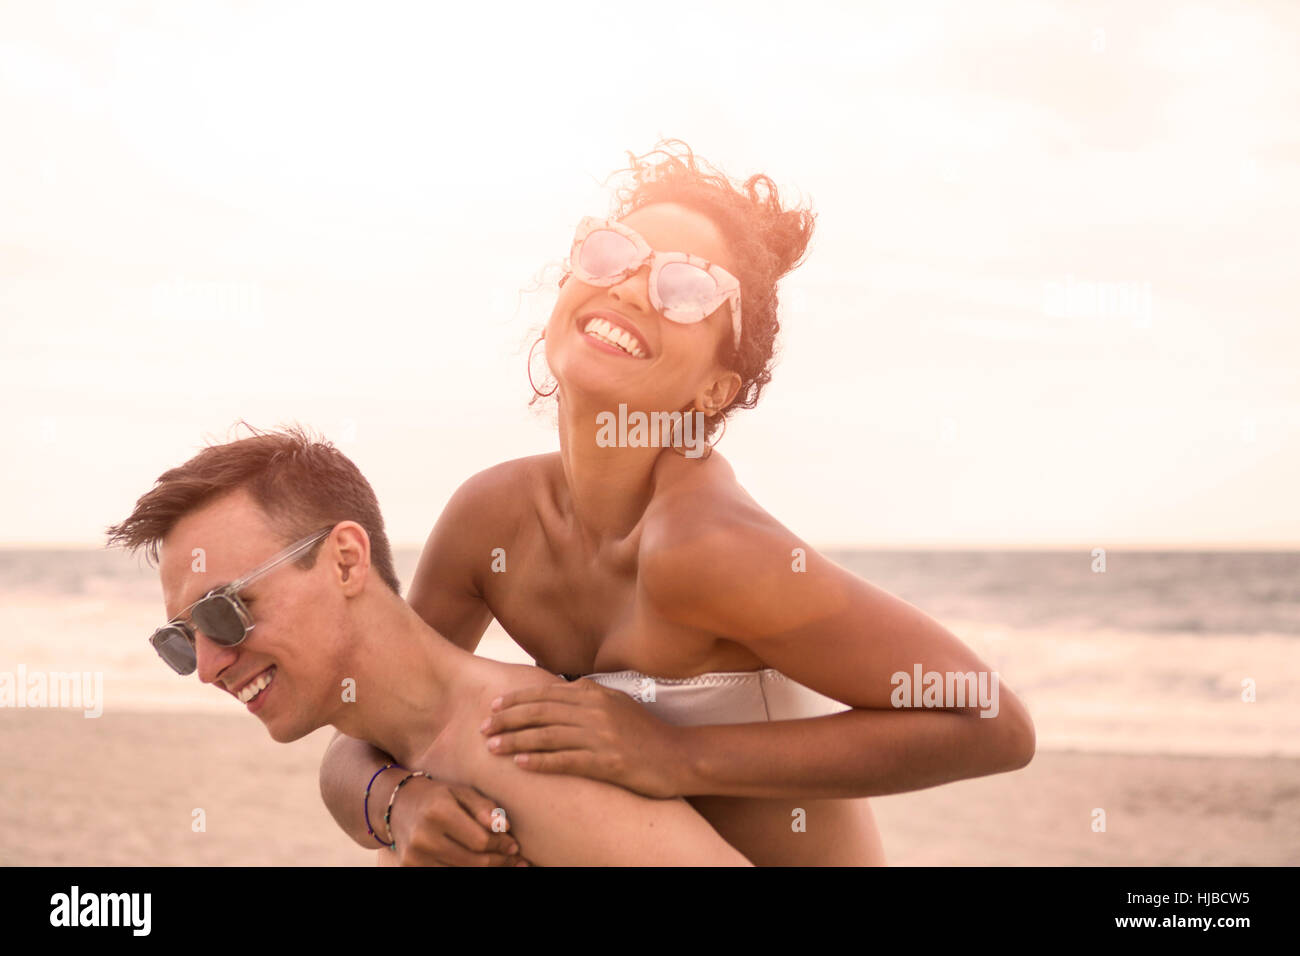 Young man giving piggy back to girlfriend on Rockaway Beach, New York State, USA Stock Photo